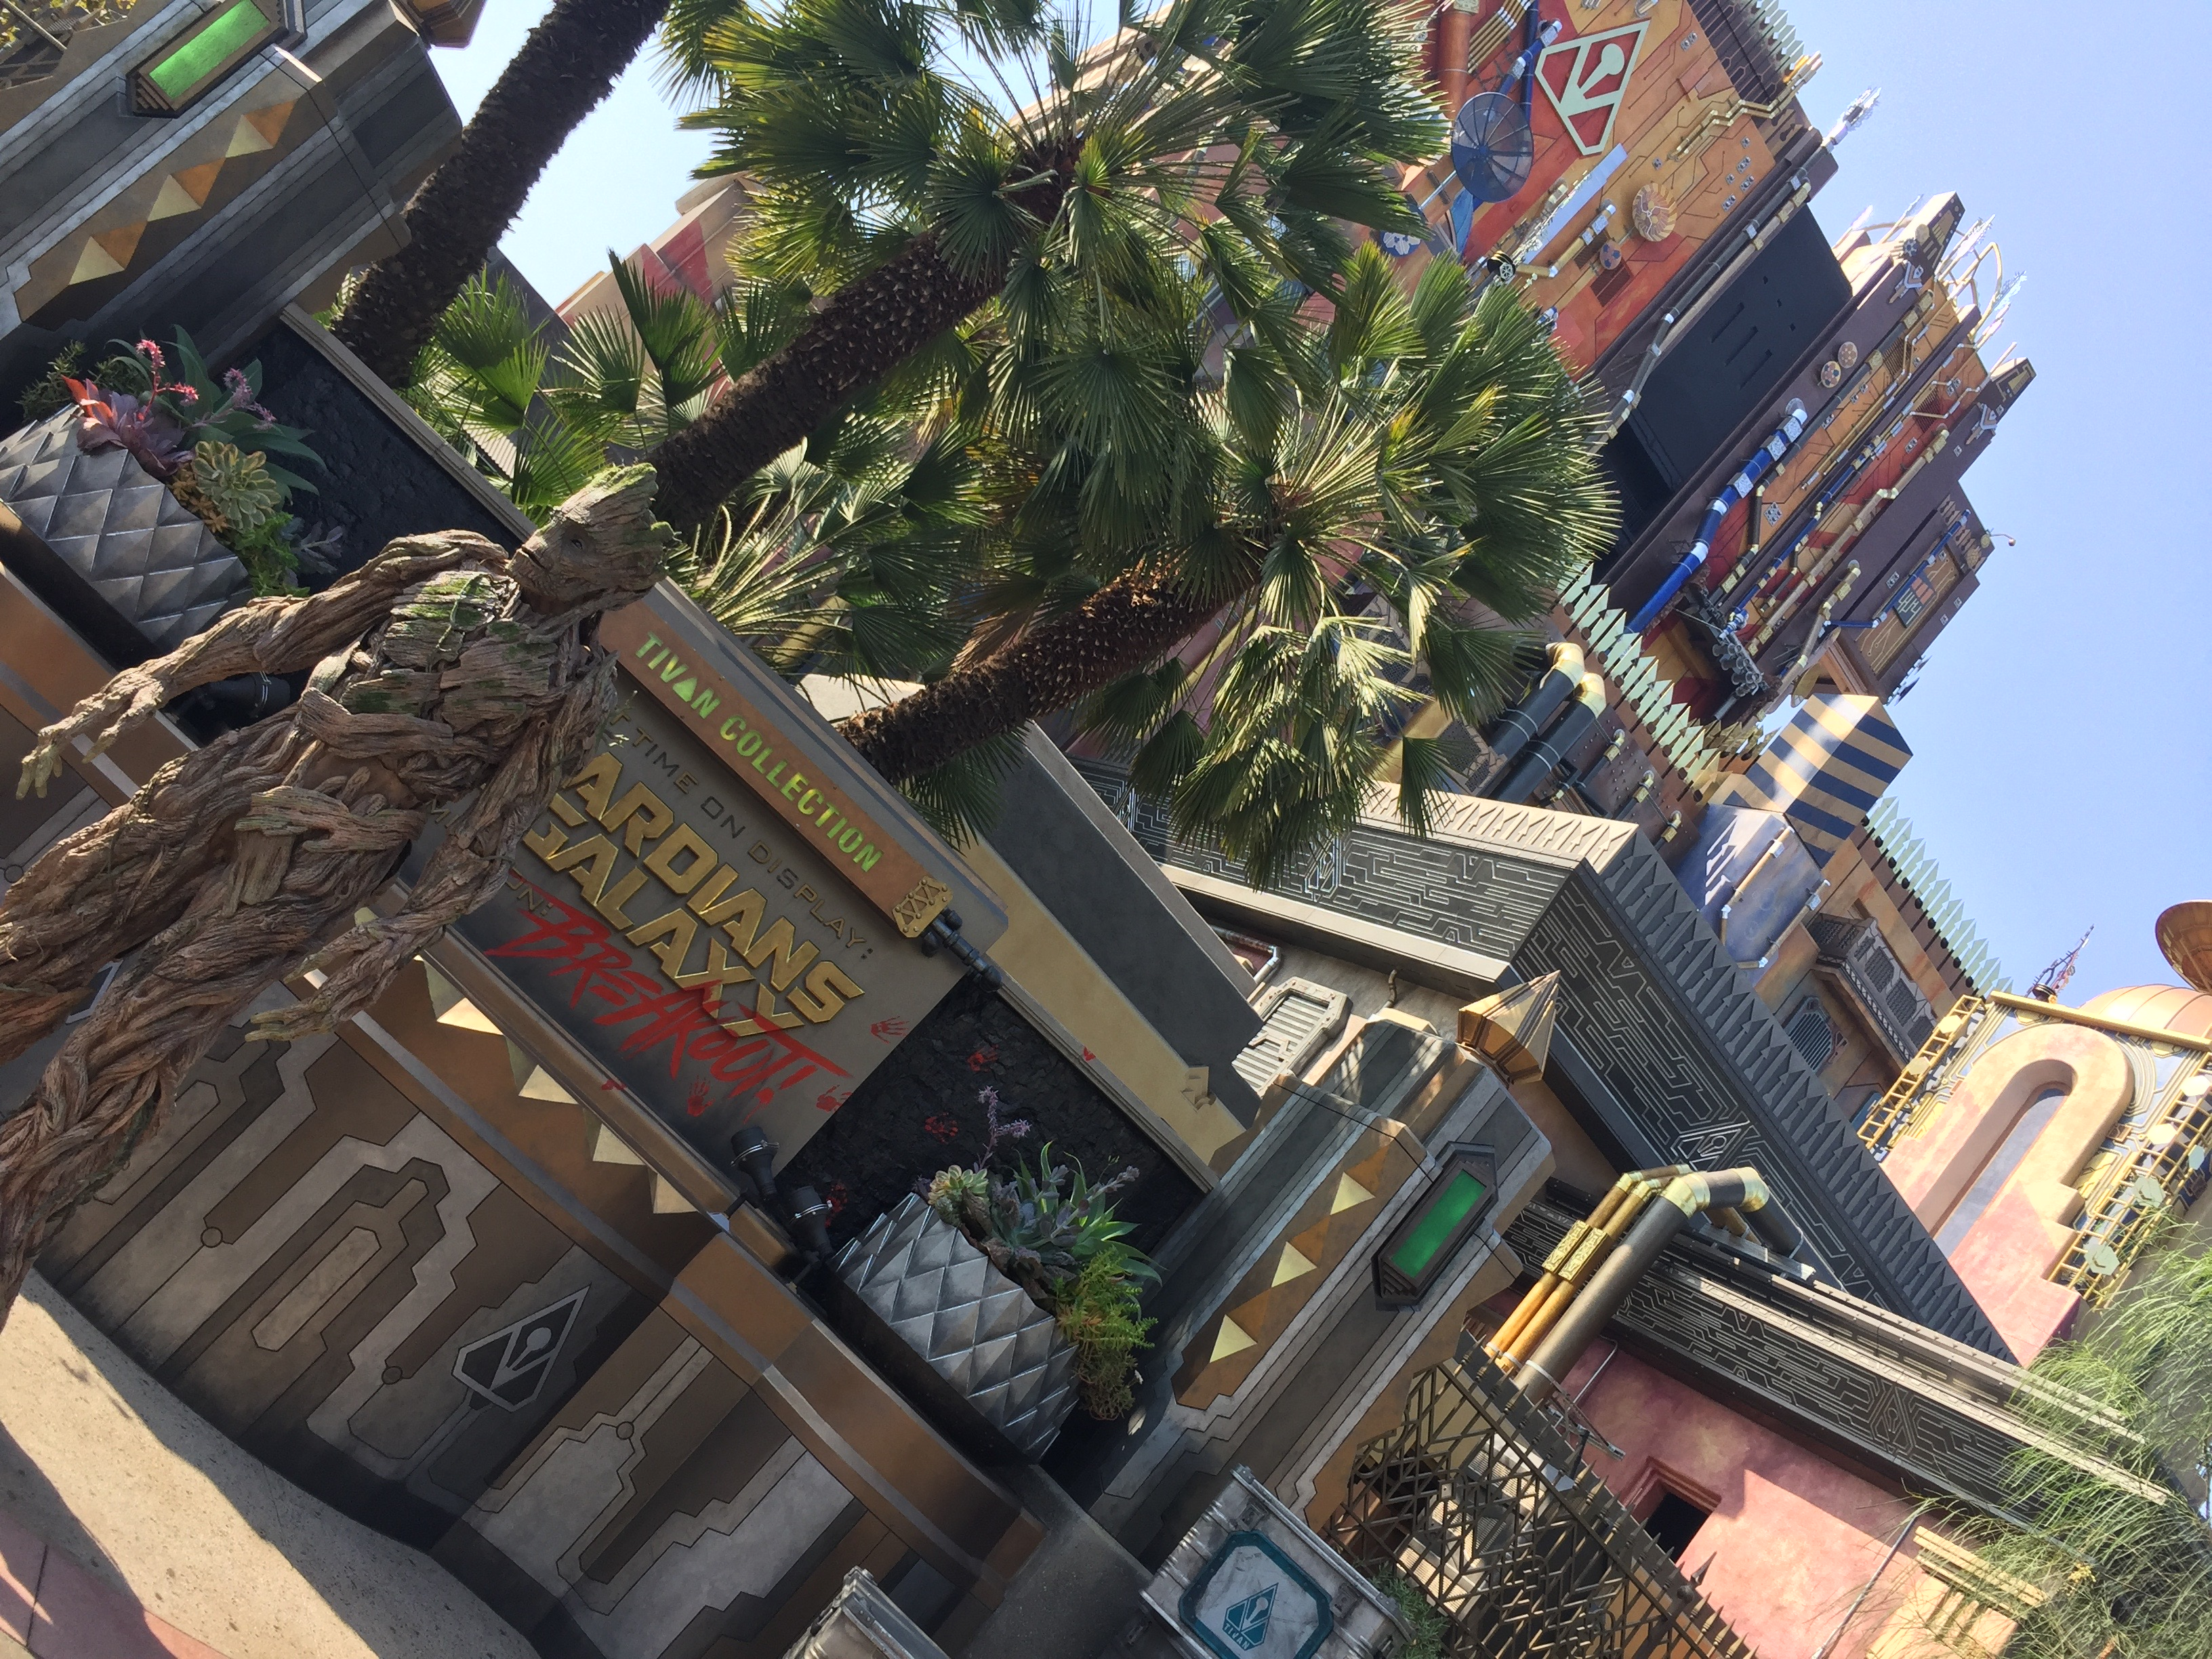 Groot devant Guardians of the Galaxy : Mission Breakout (